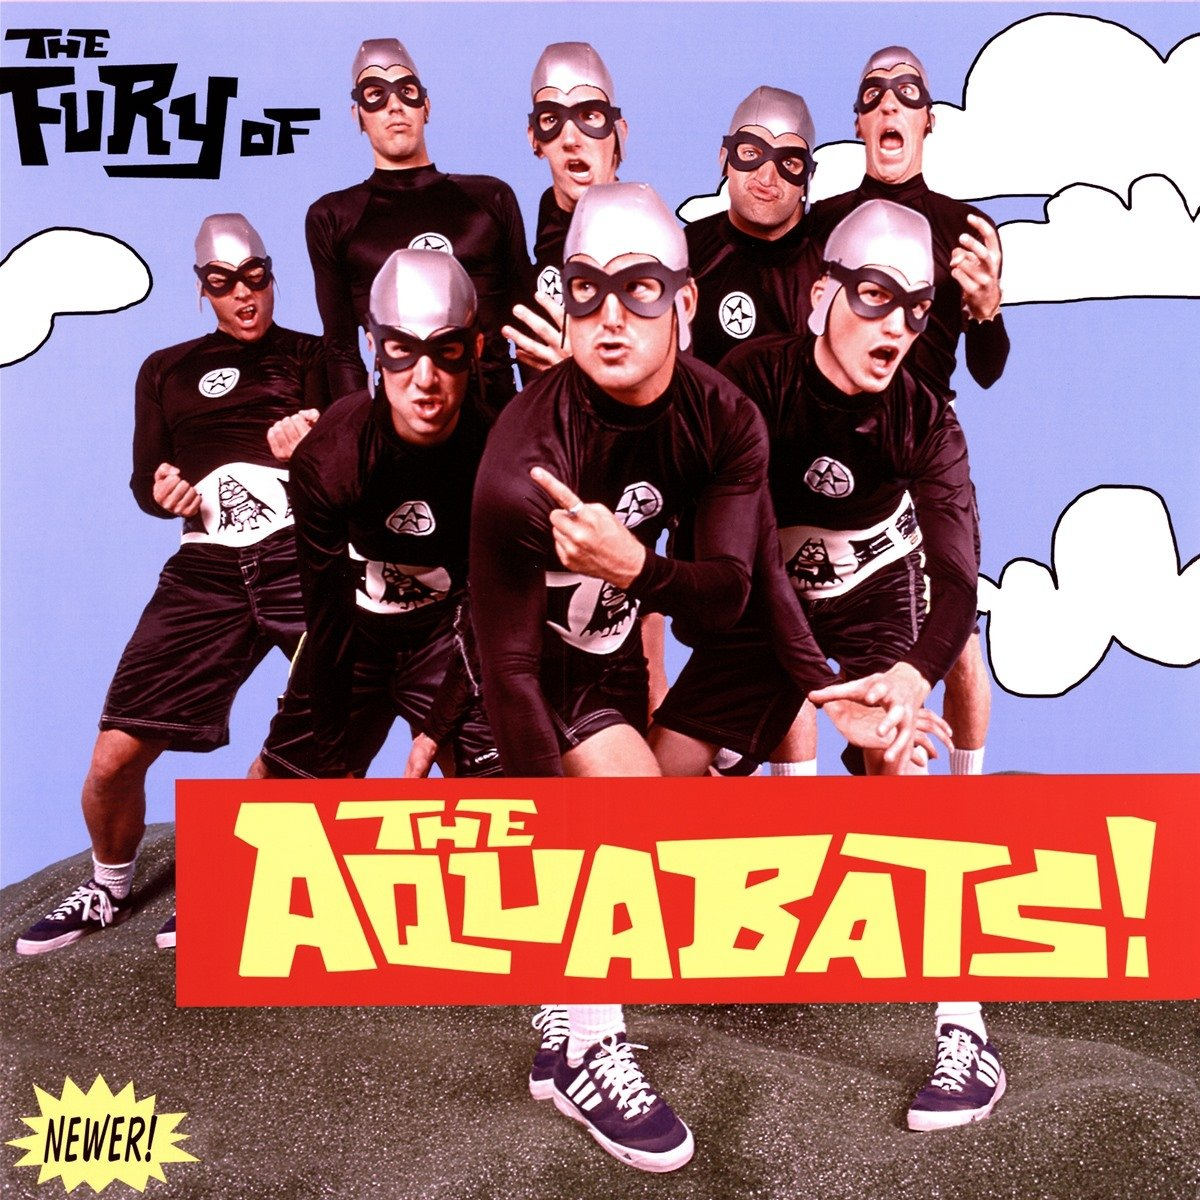 The Aquabats - The Fury Of The Aquabats (Expanded 2018 Remaster) (2 LP,  Neon Green Vinyl) - Amazon.com Music